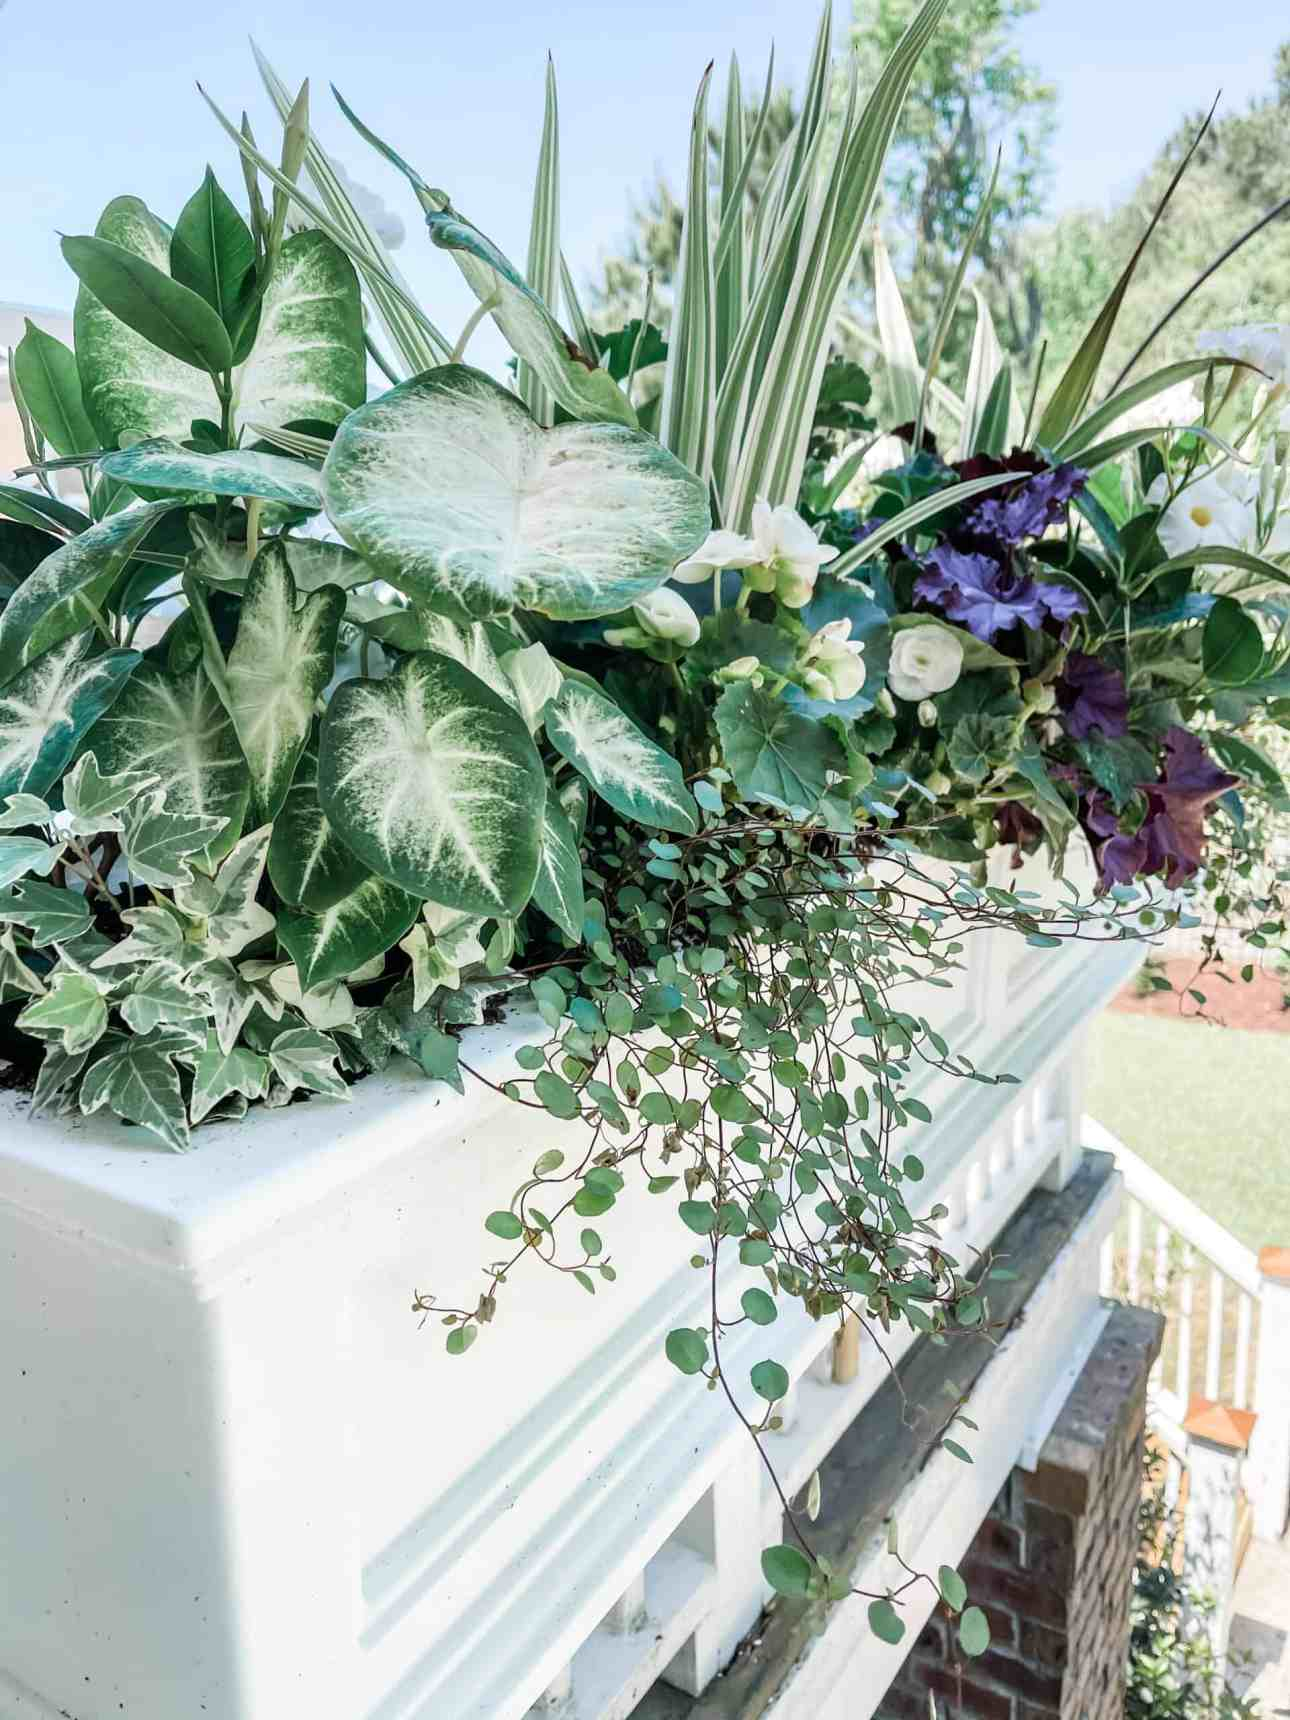 Shade and partial shade loving plants for window boxes.